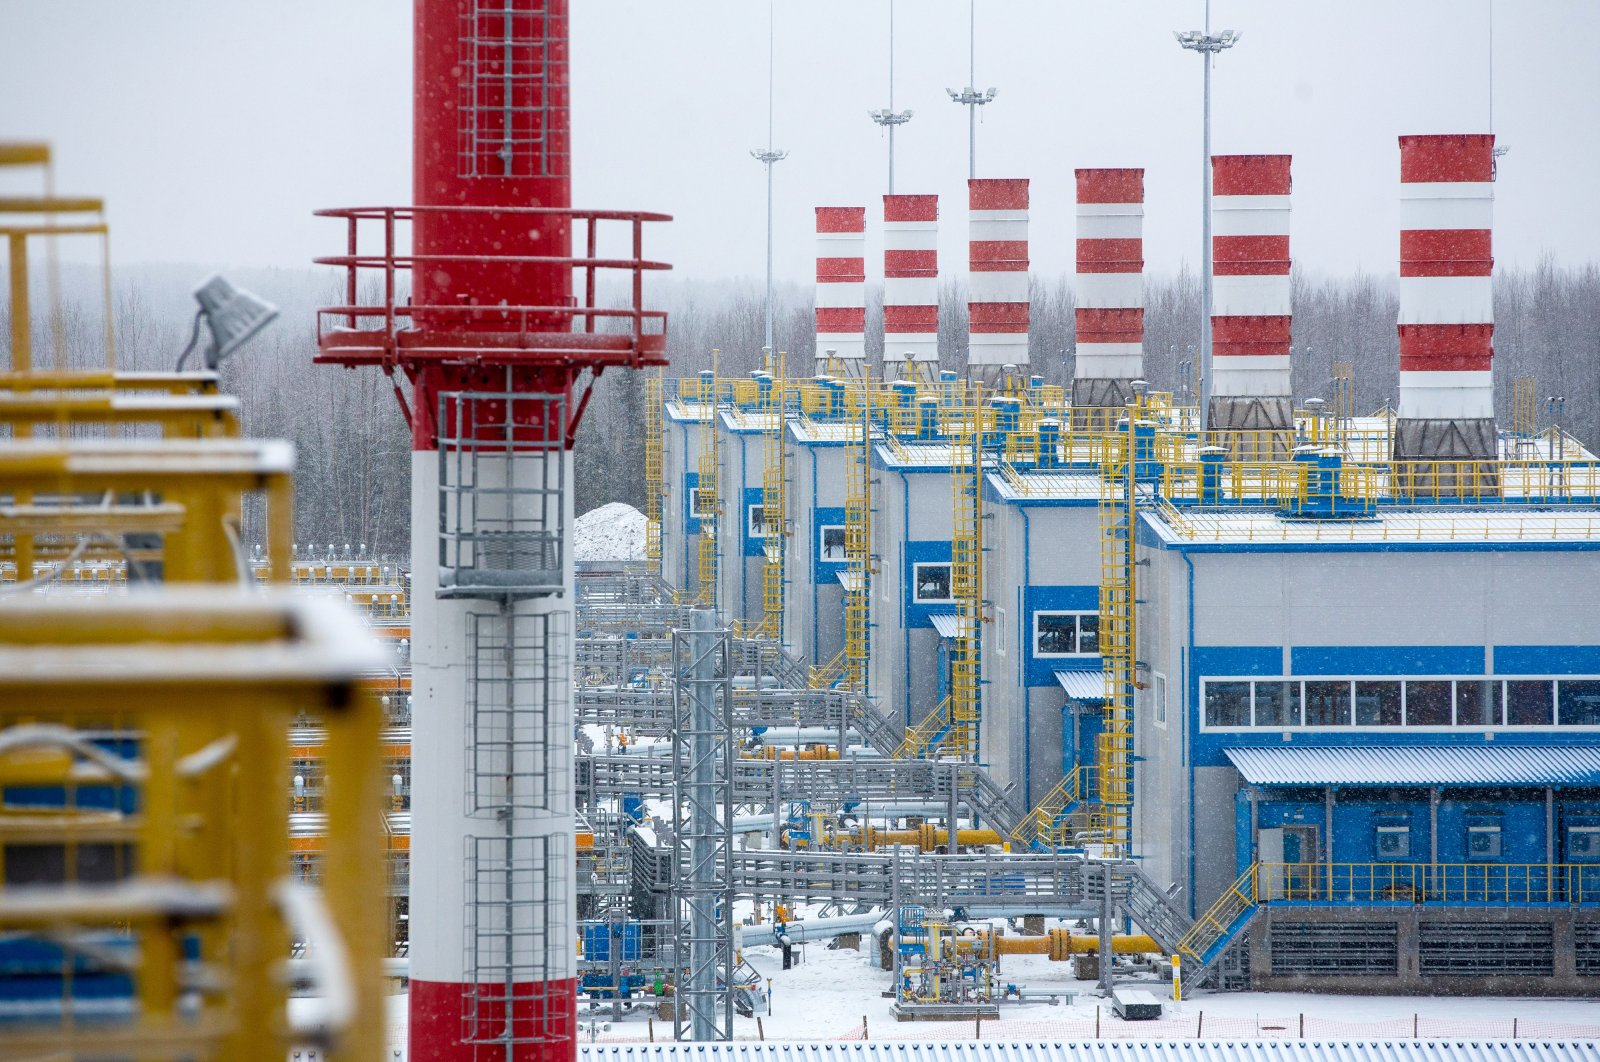 Compressor complexes at the Gazprom PJSC Slavyanskaya compressor station, the starting point of the Nord Stream 2 gas pipeline, in Ust-Luga, Russia, Jan. 28, 2021. (Photo by Getty Images)